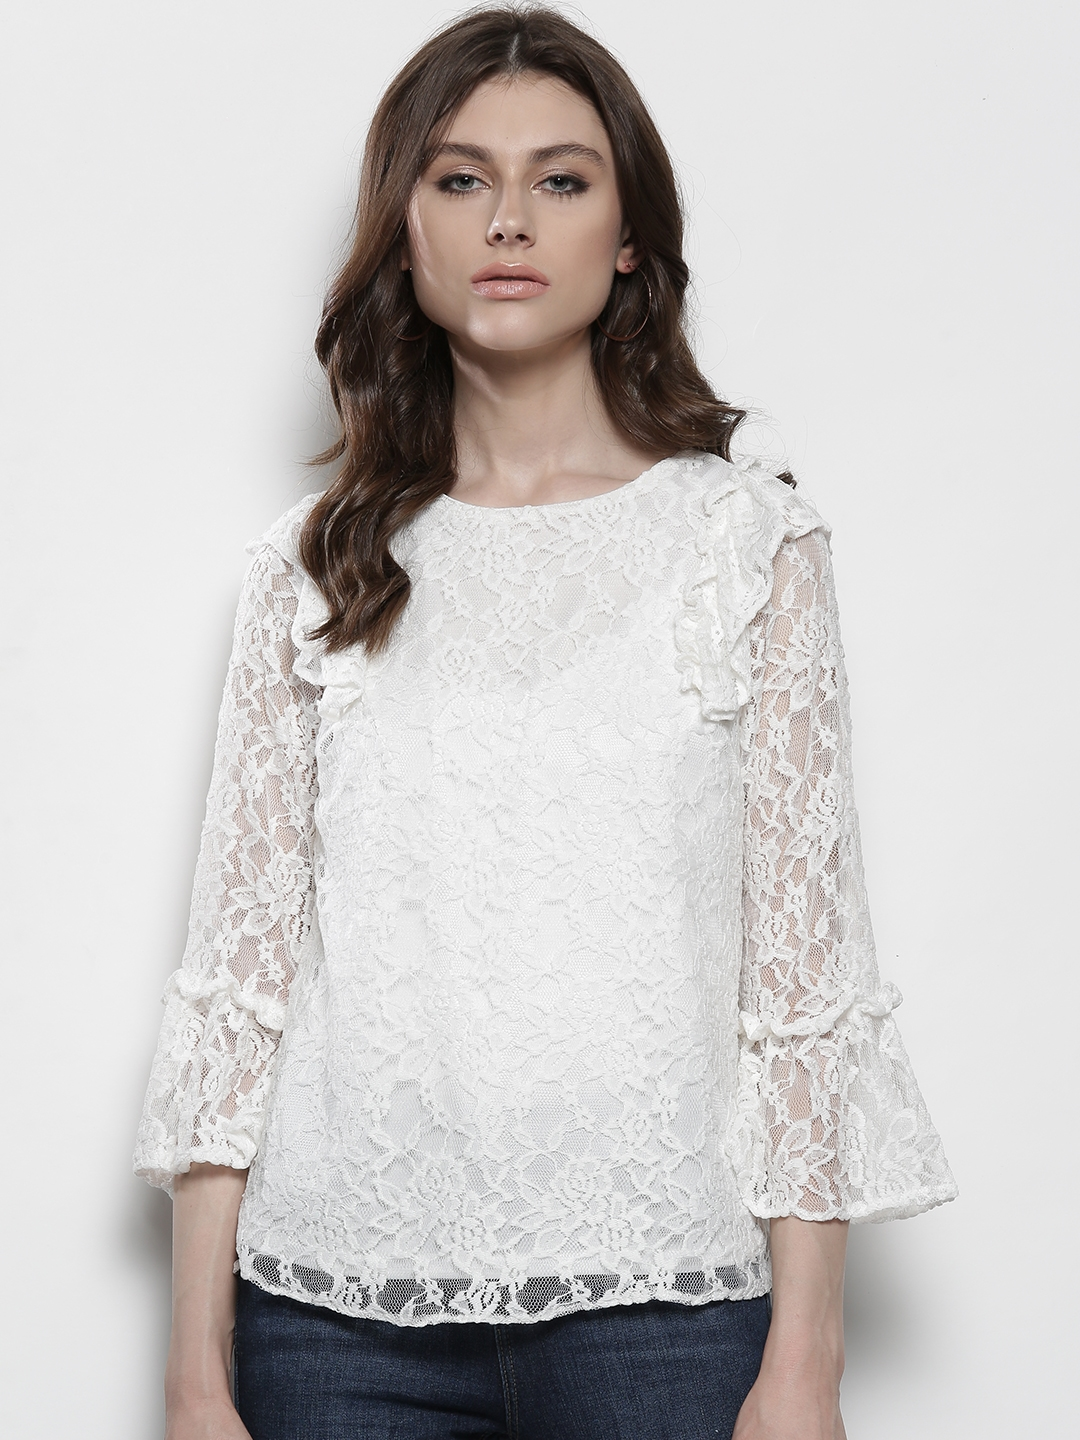 2ff2397313b1cb Buy DOROTHY PERKINS Women White Lace Top - Tops for Women 2386539 ...